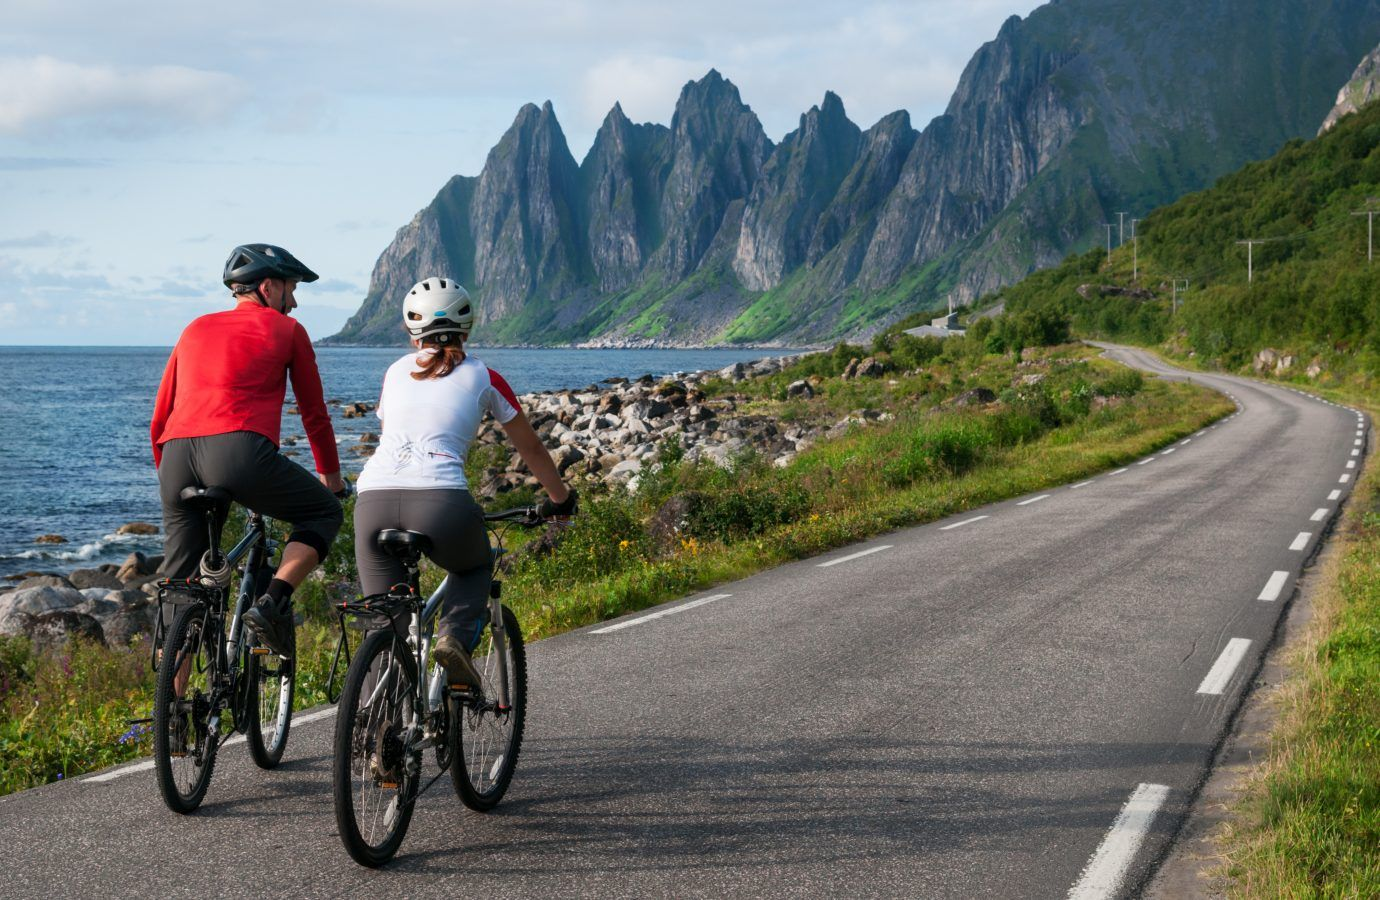 7 Best Bike Tours In Europe For Every Level Bike Tour Europe